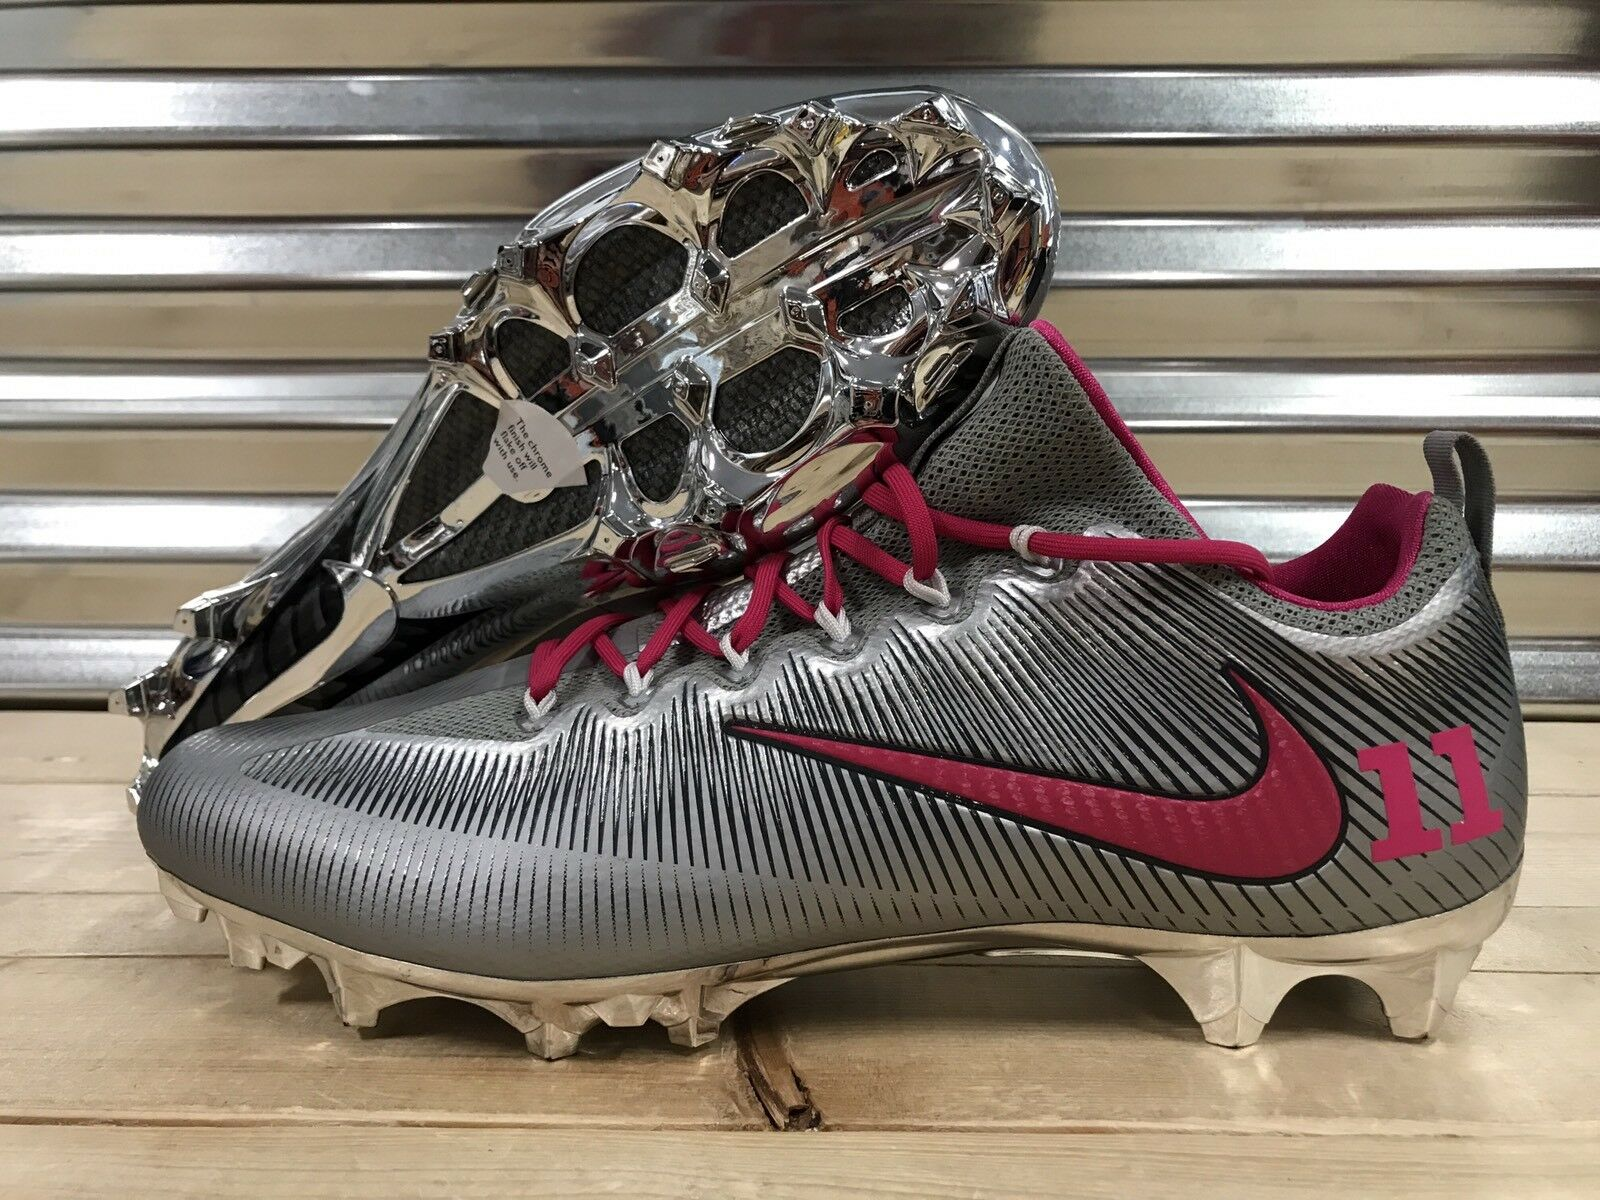 7a004f5b9b17 Nike Vapor Untouchable Pro iD Football Cleats Metallic Silver Chrome Pink  SZ 16